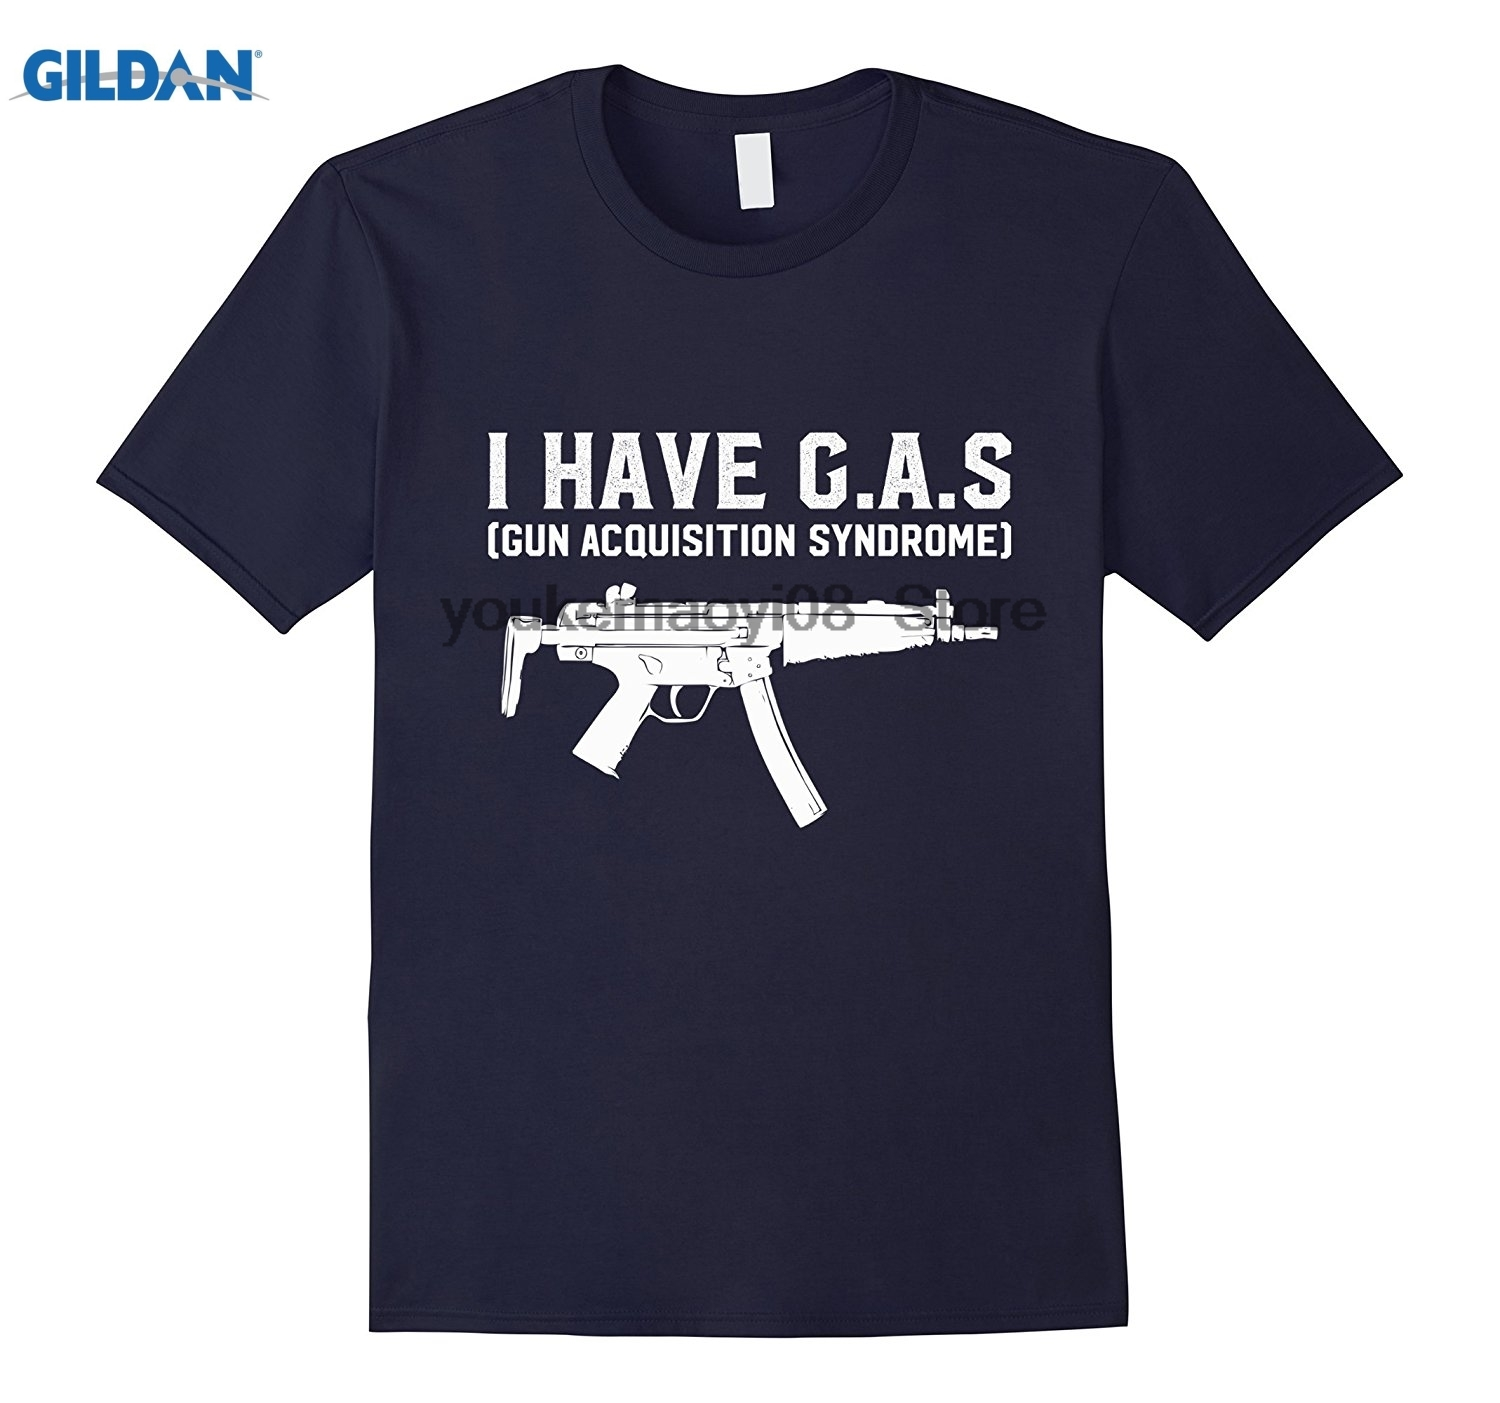 GILDAN I Have GAS Gun Acquisition Syndrome Funny Pro Weapon T-Shirt